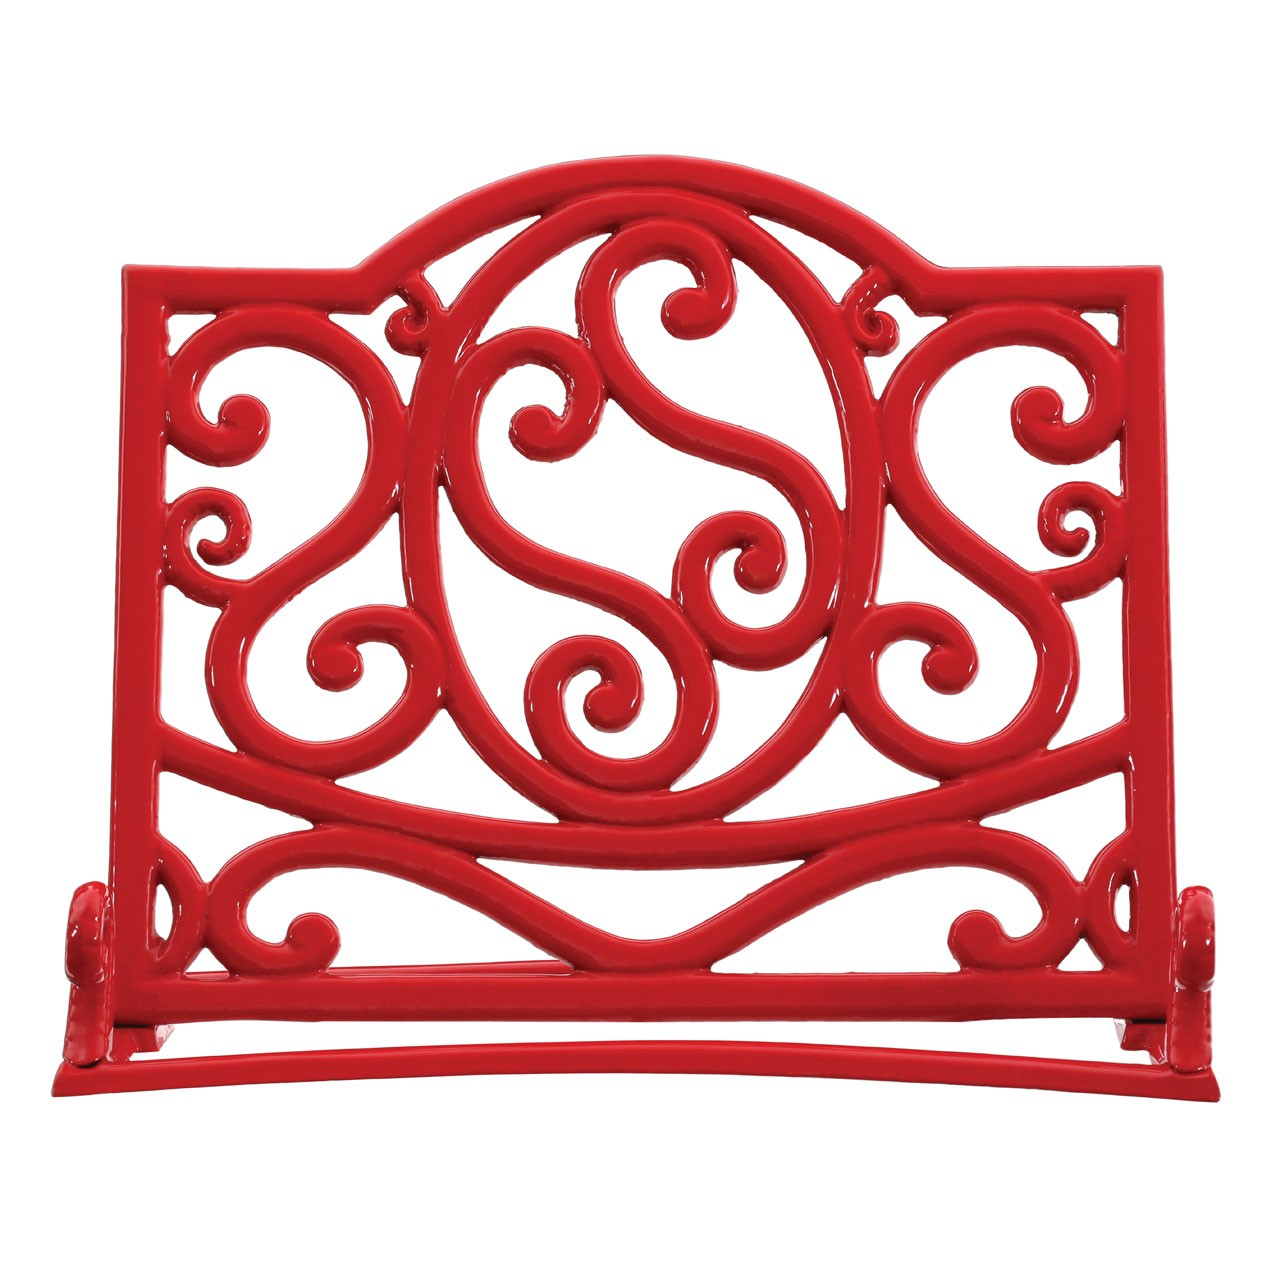 Cast Iron Cookbook Stand - Red